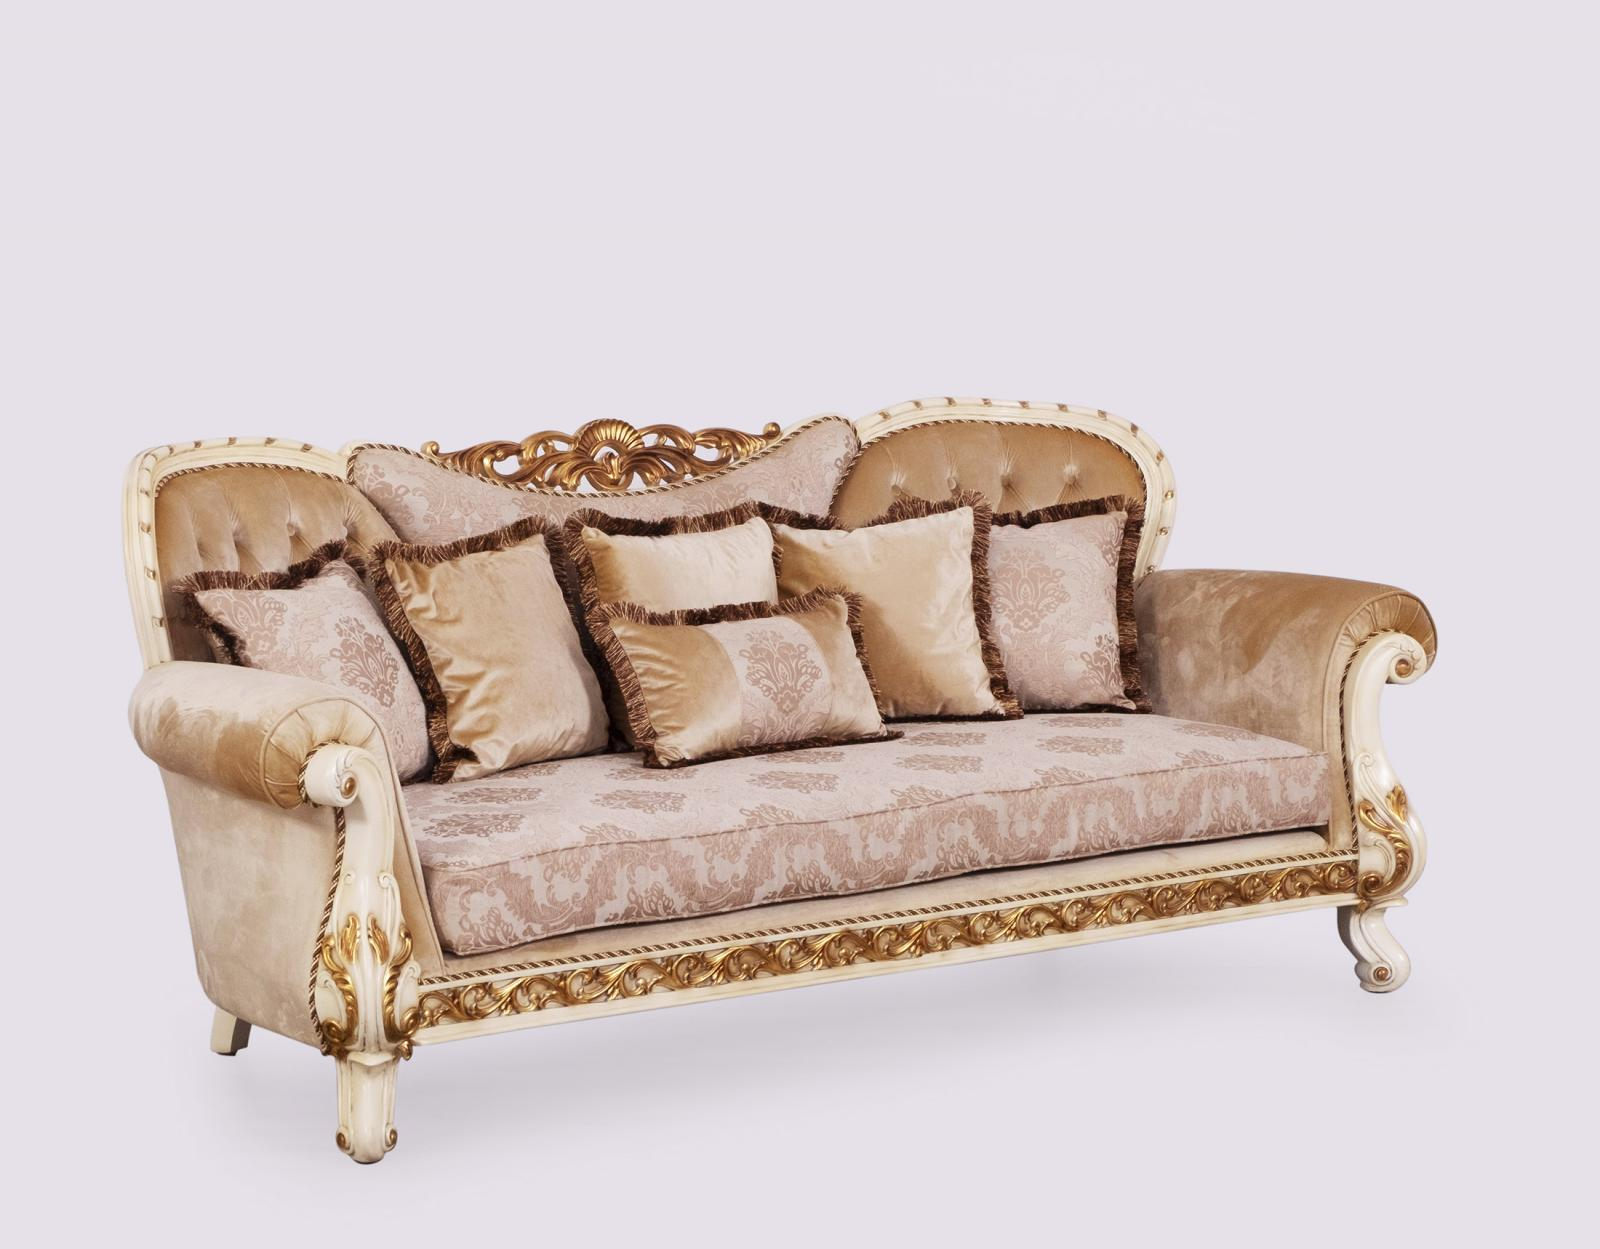 Classic  Traditional Gold  Sand   Beige Wood  Solid Hardwood and Fabric Sofa EUROPEAN FURNITURE 40017-S